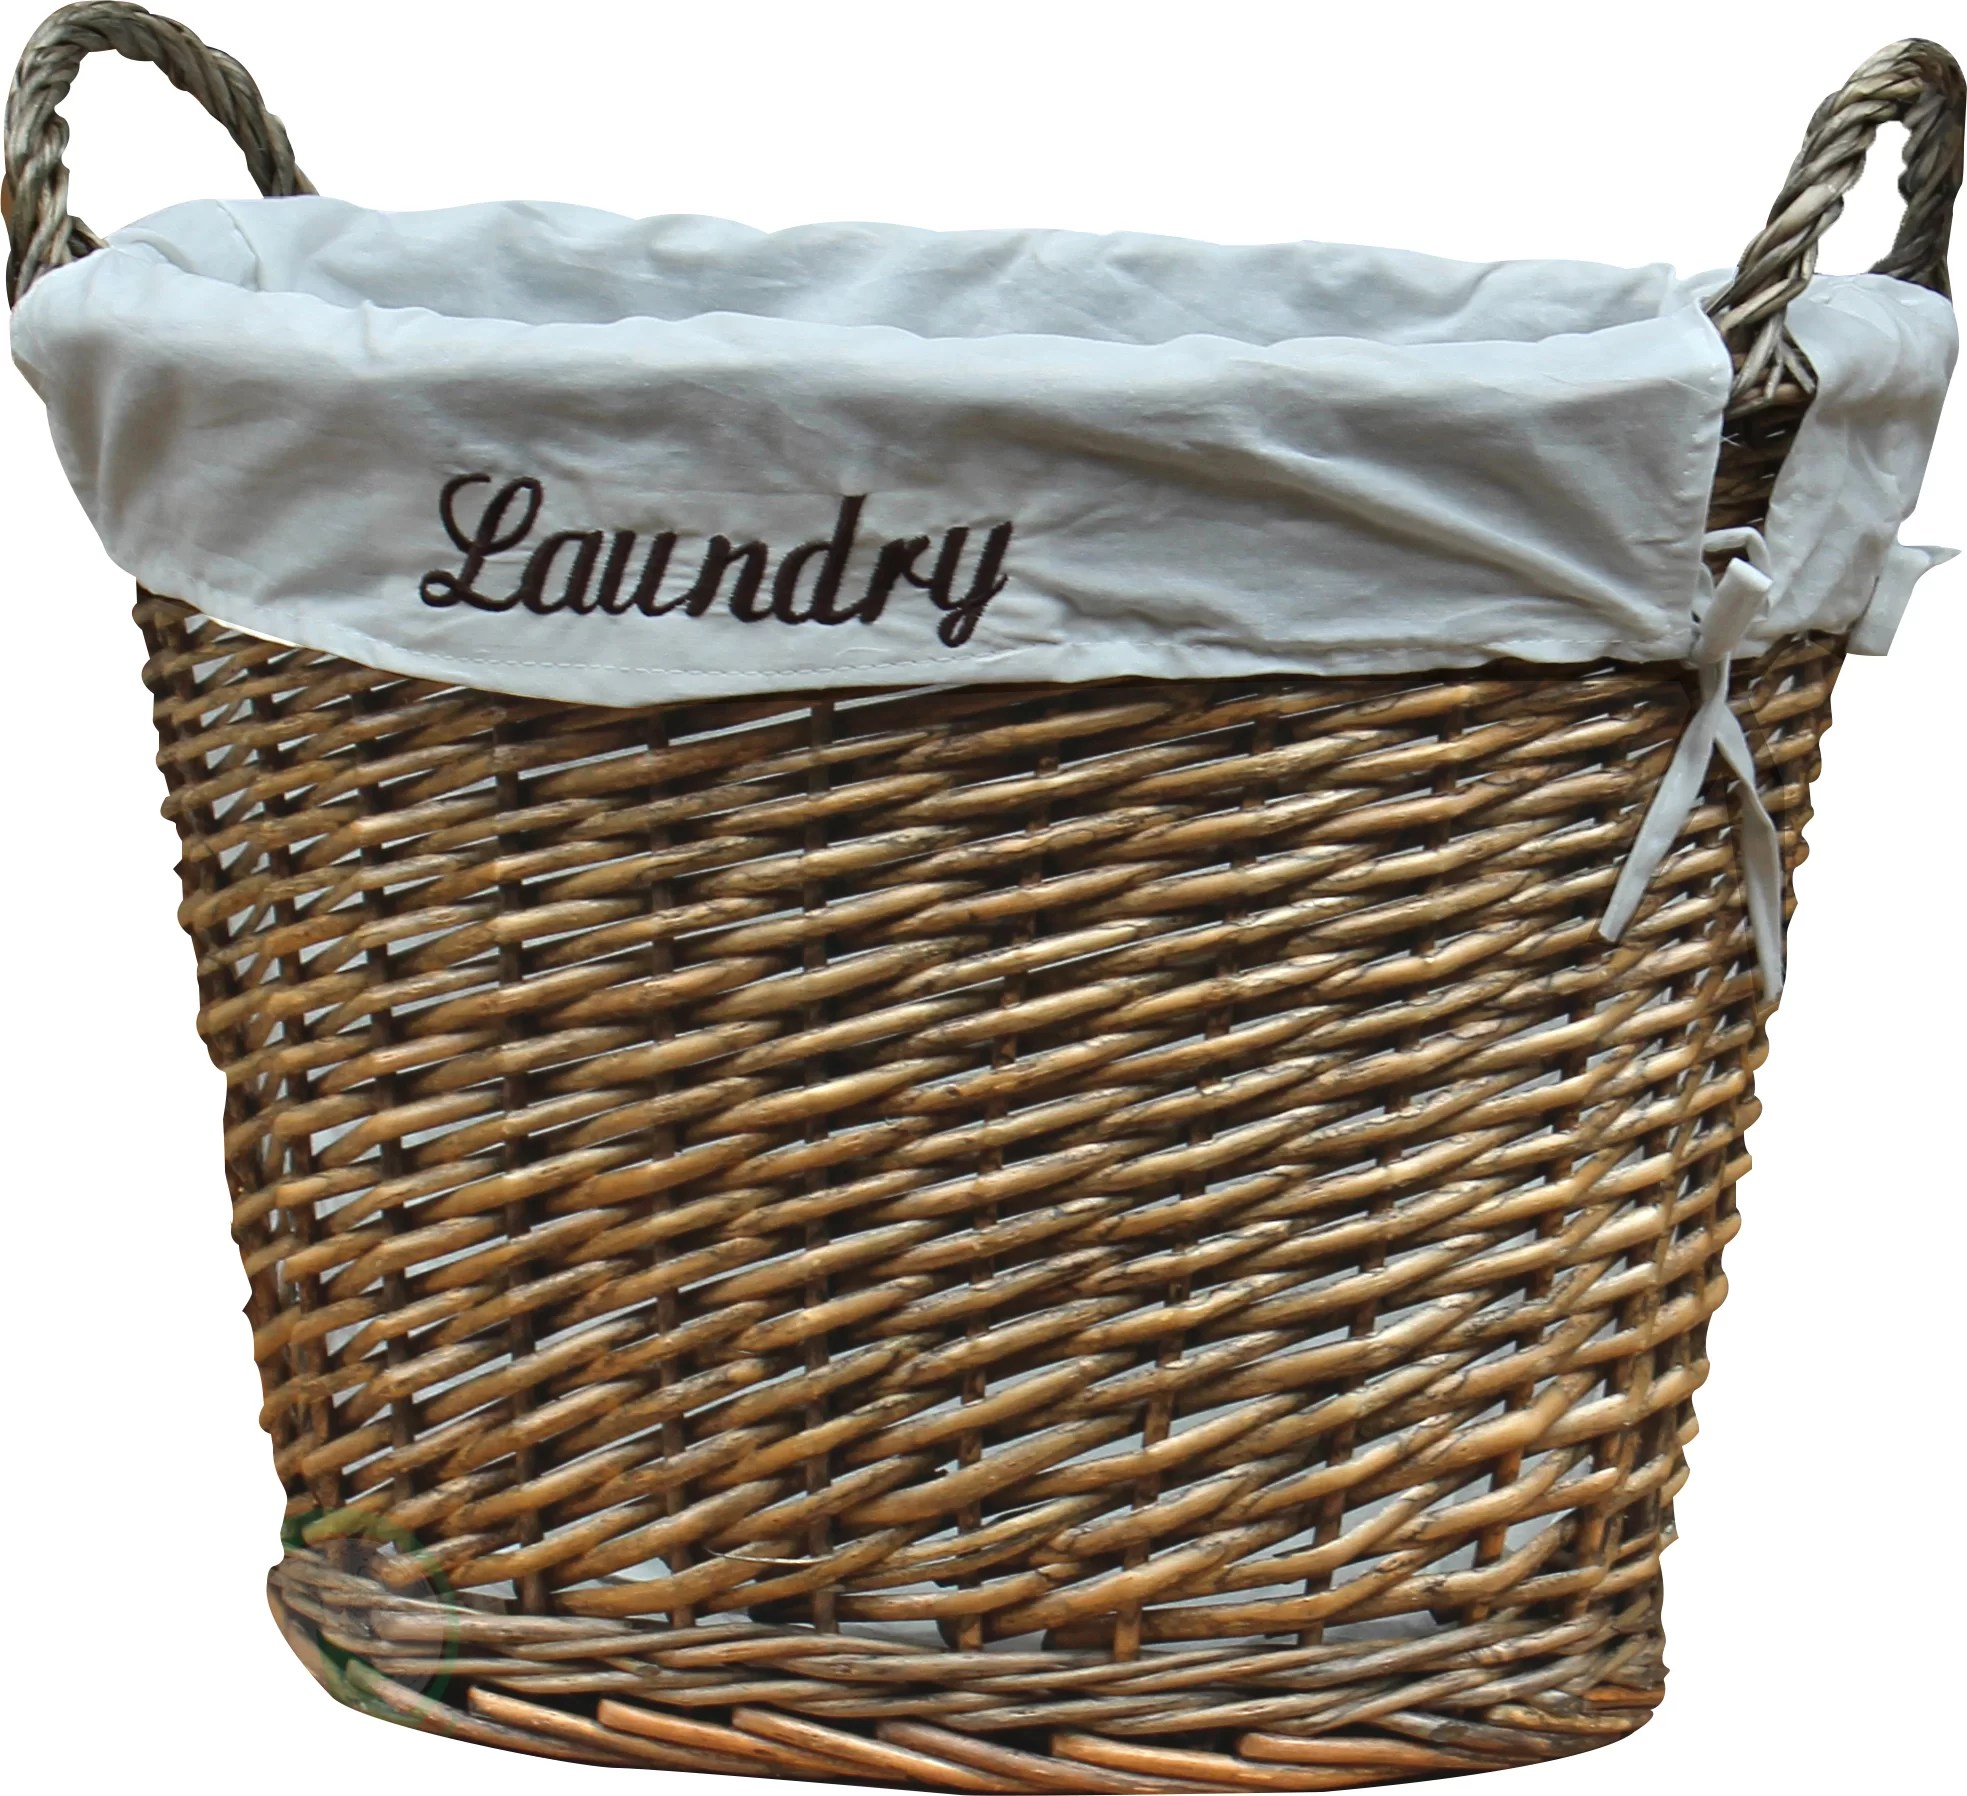 Decorative Laundry Baskets Quickway Imports Wicker Laundry Basket Ebay